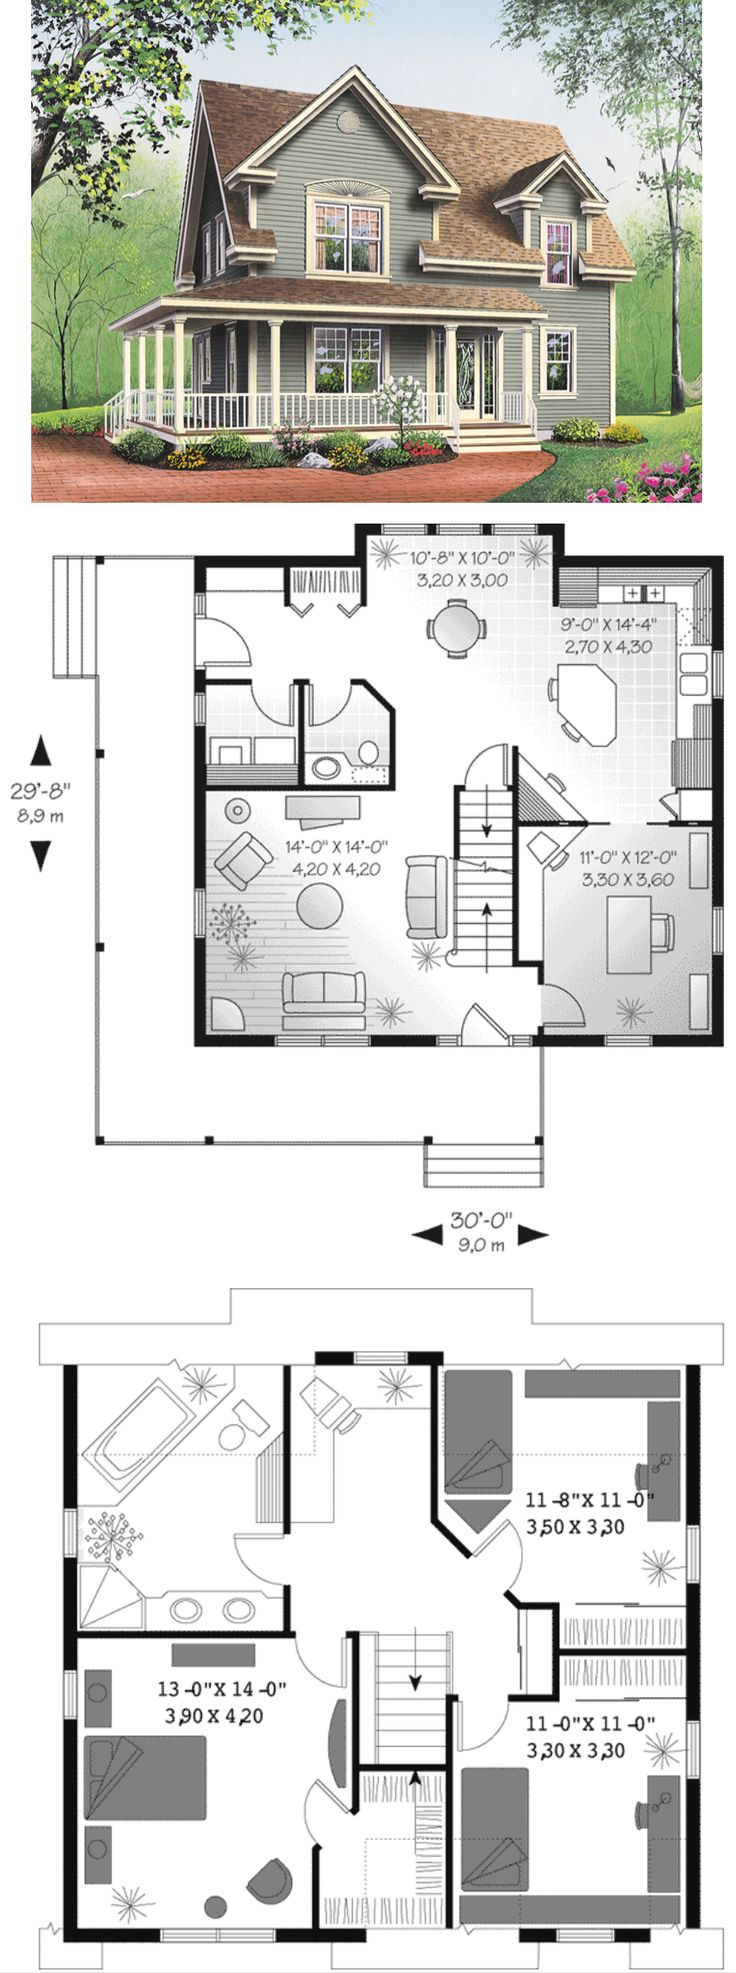 Farmhouse Plans best 20+ small farmhouse plans ideas on pinterest | small home